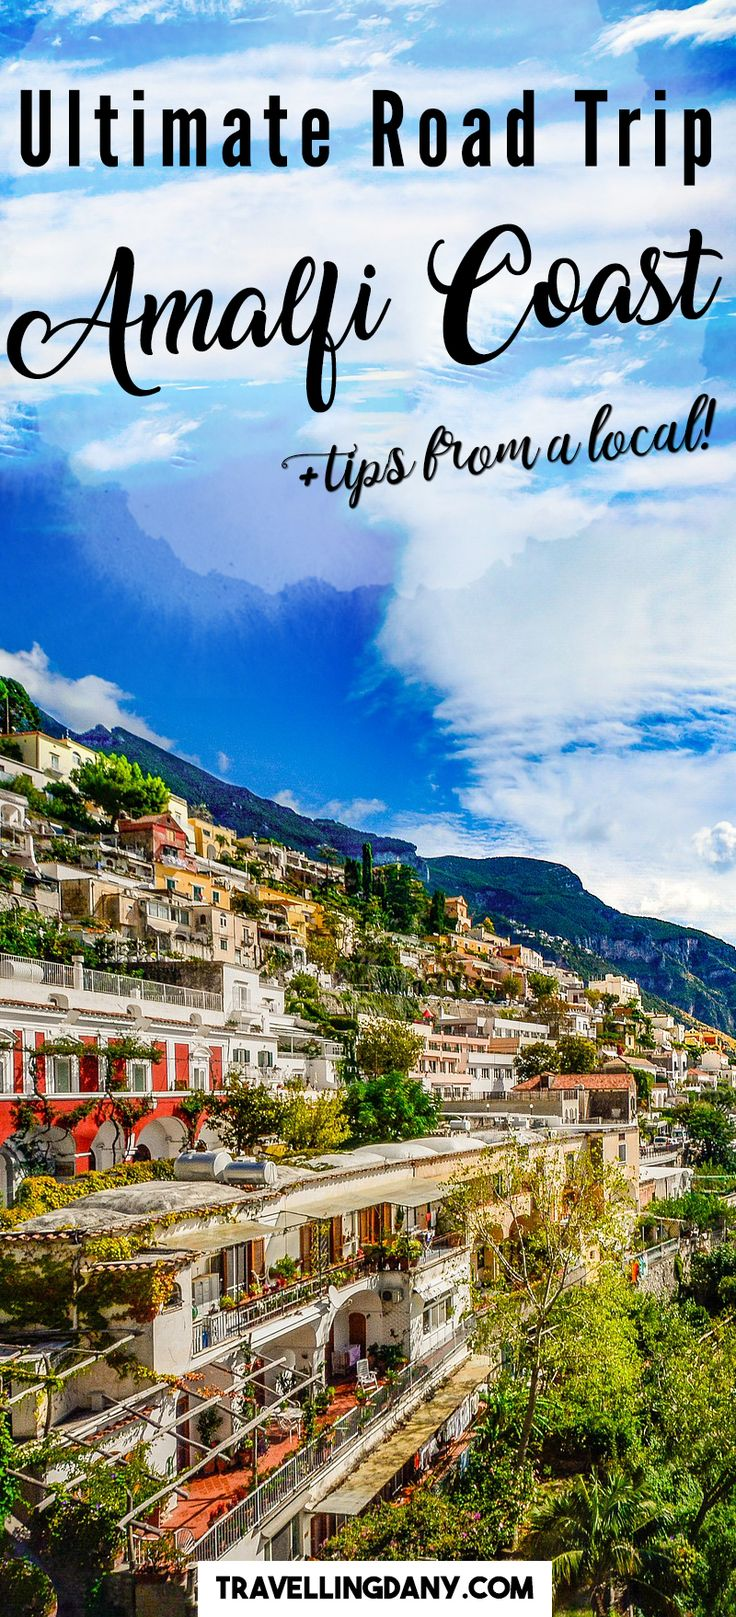 The Amalfi Coast is the most scenic coastline in Italy. Read our tips from a local to discover secret beaches, foods and activities in Positano, Praiano and other towns along the Amalfi Coast scenic drive!